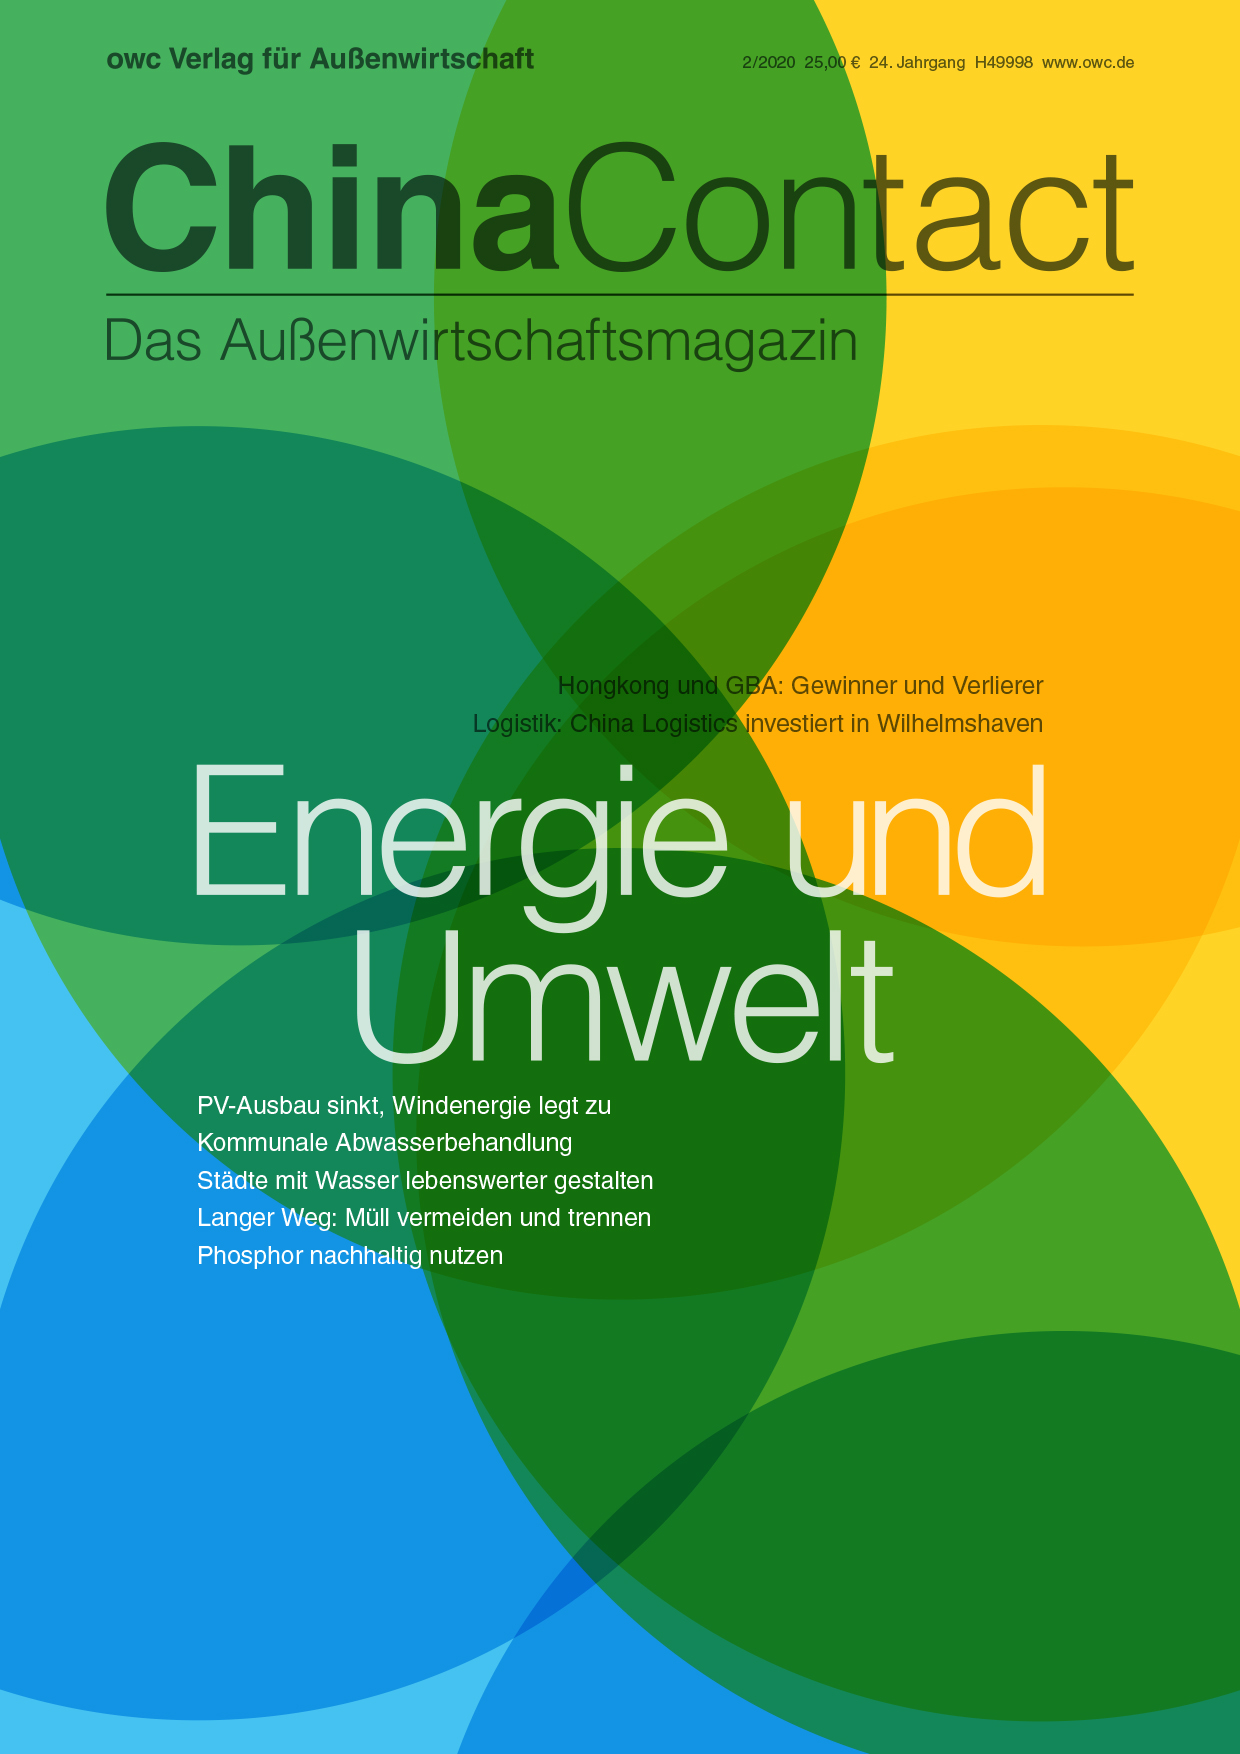 https://owc.de/wp-content/uploads/2020/05/CC_2-2020_cover.jpg